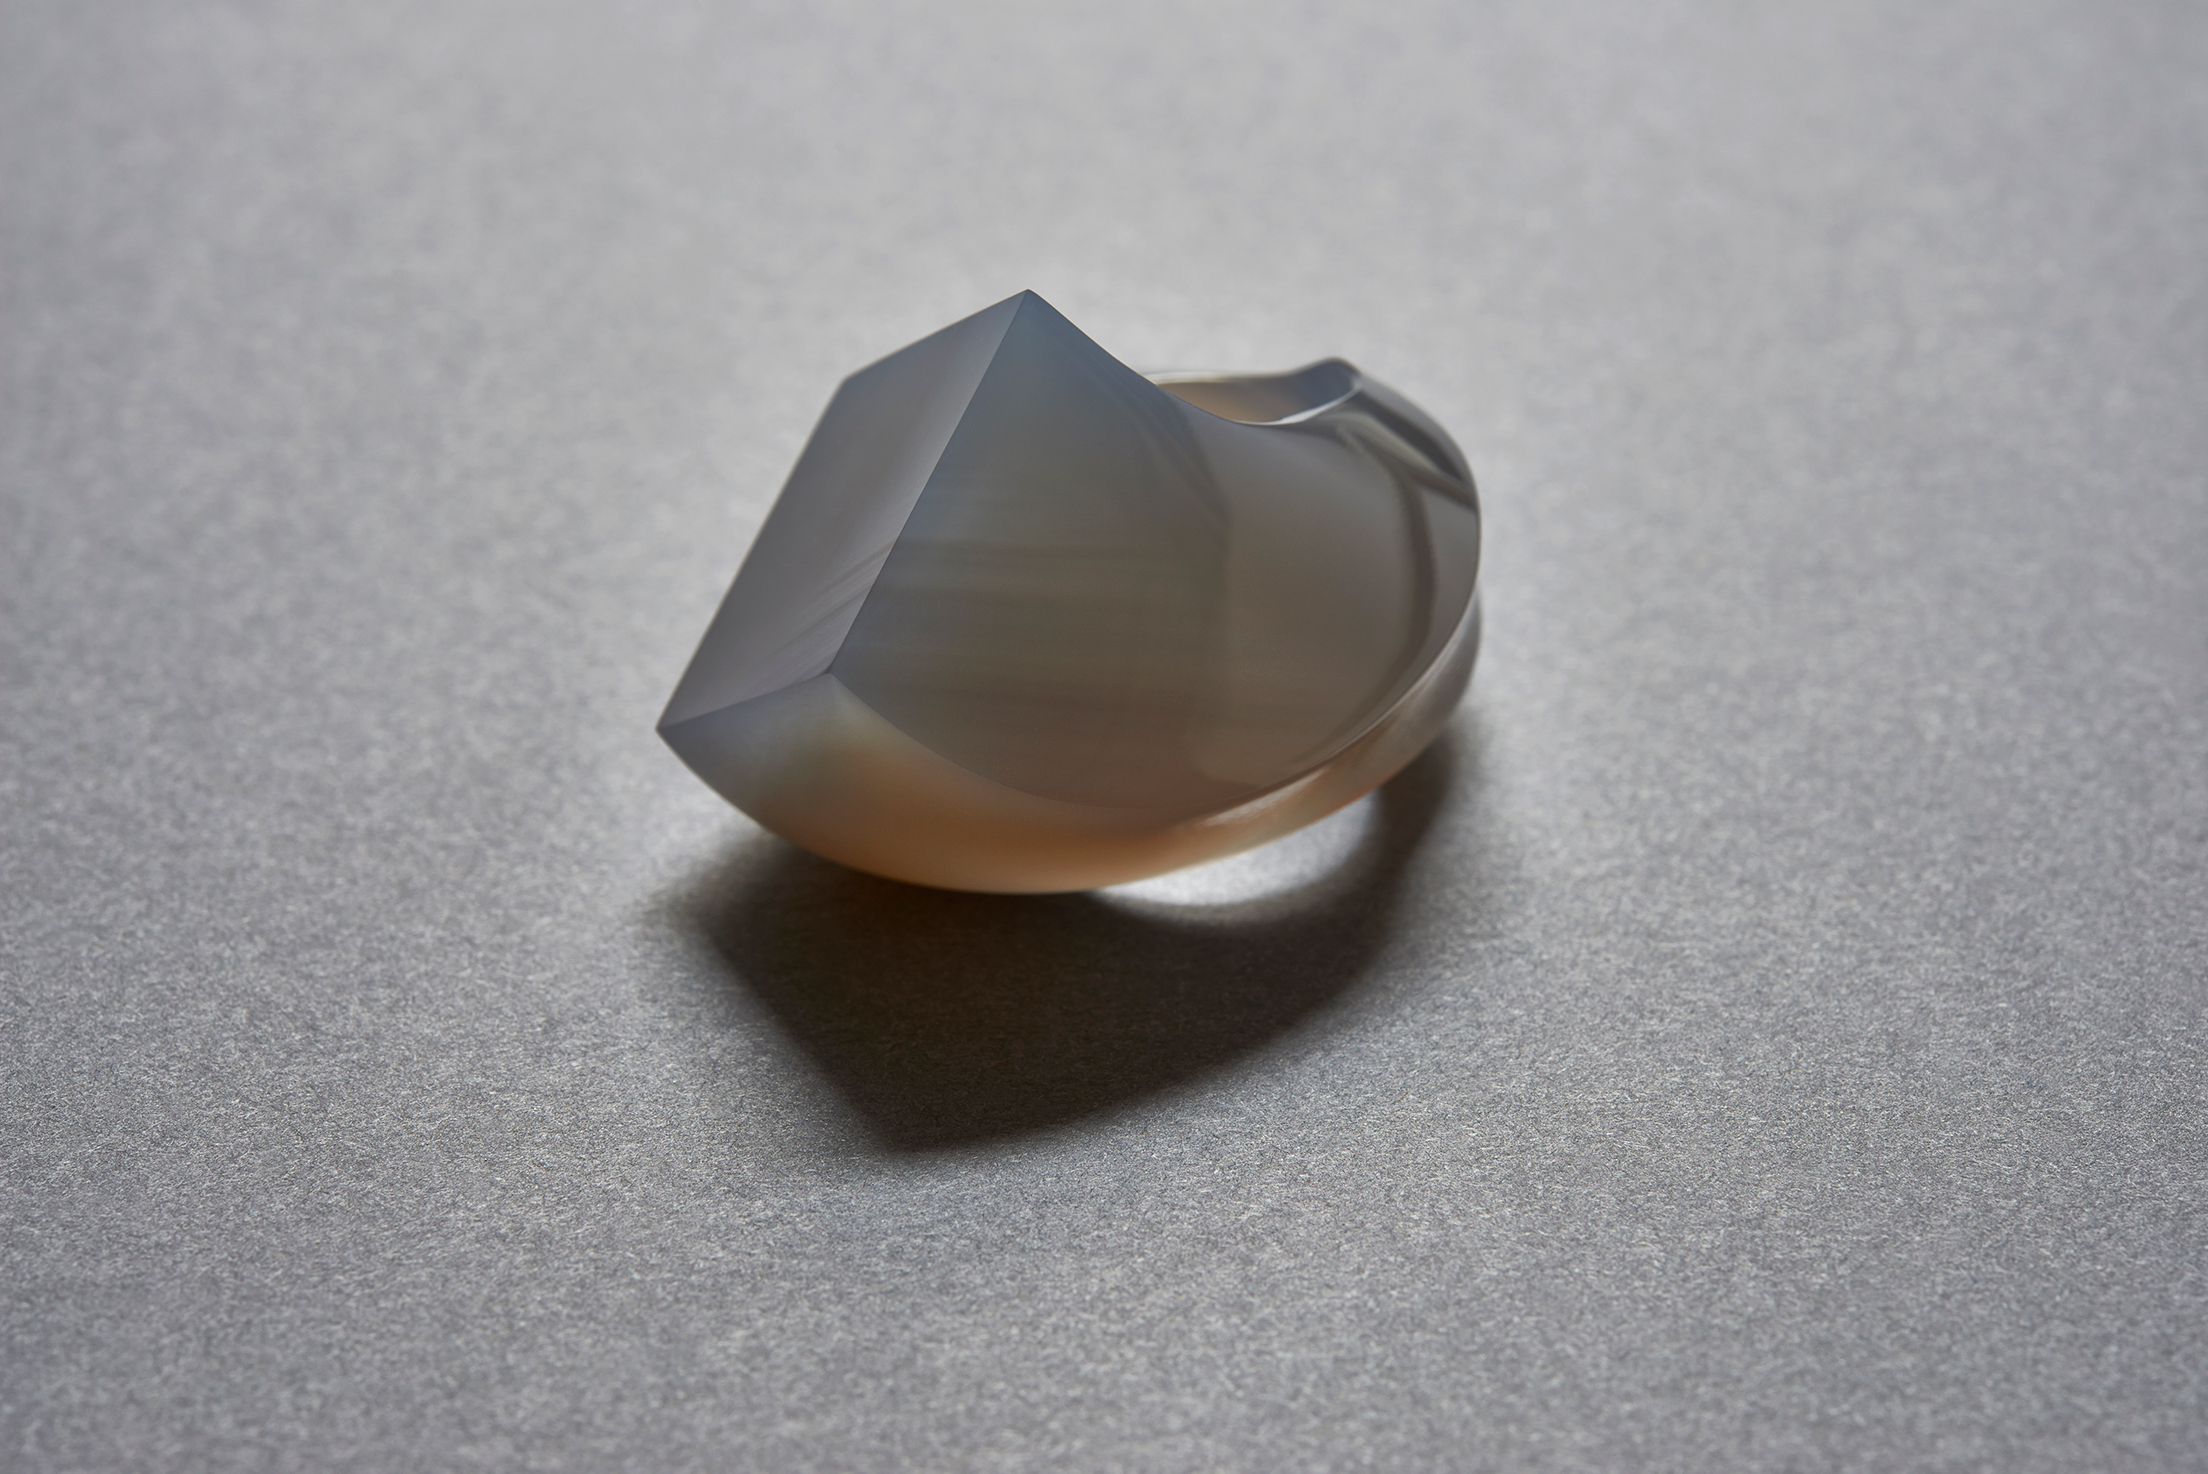 Yutaka Minegishi,  Ring , 2016, agate, photograph courtesy of the artist